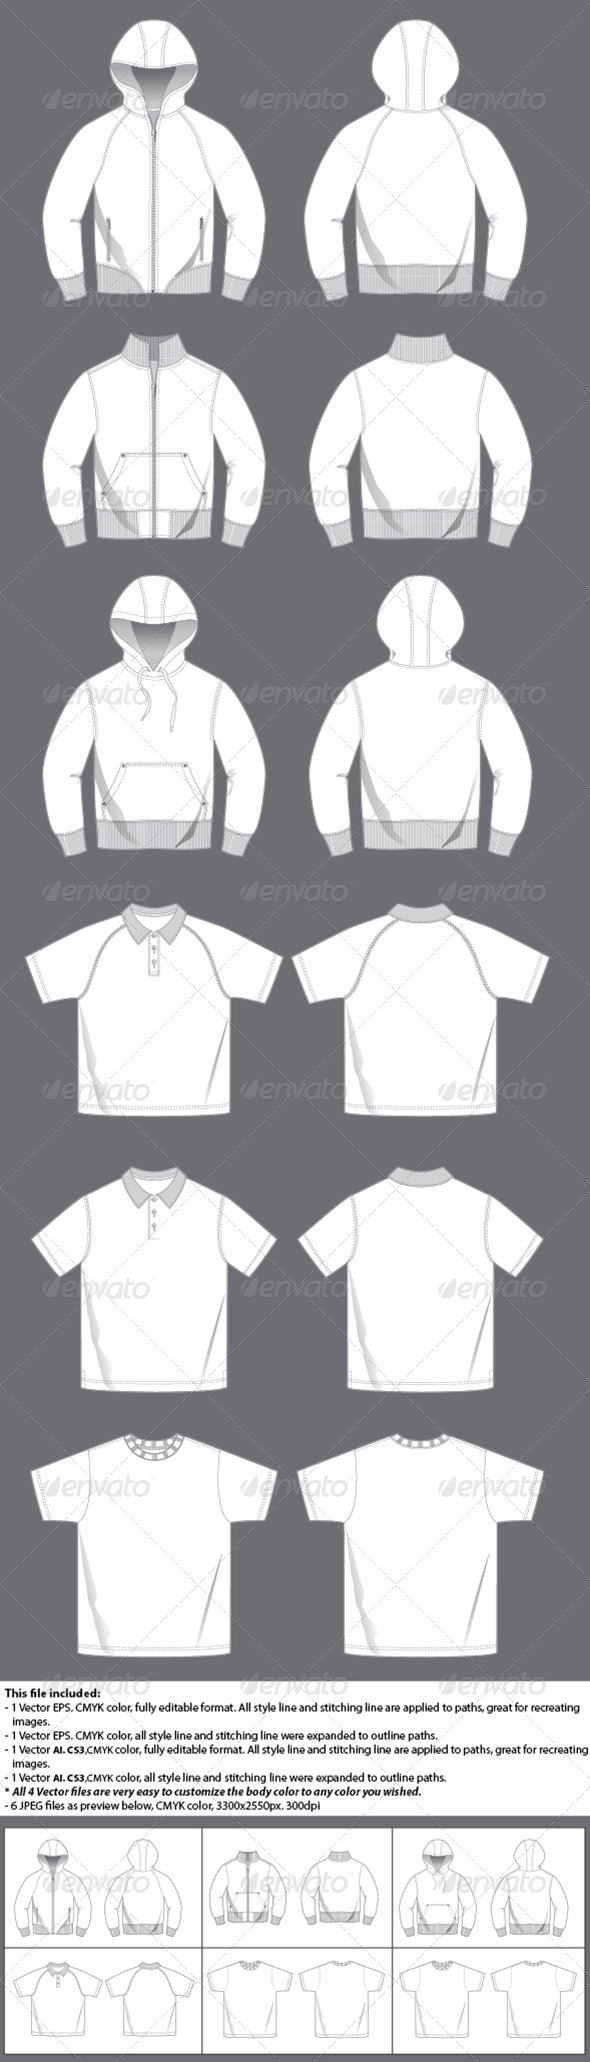 GraphicRiver Men s Casual Top Template 4435820